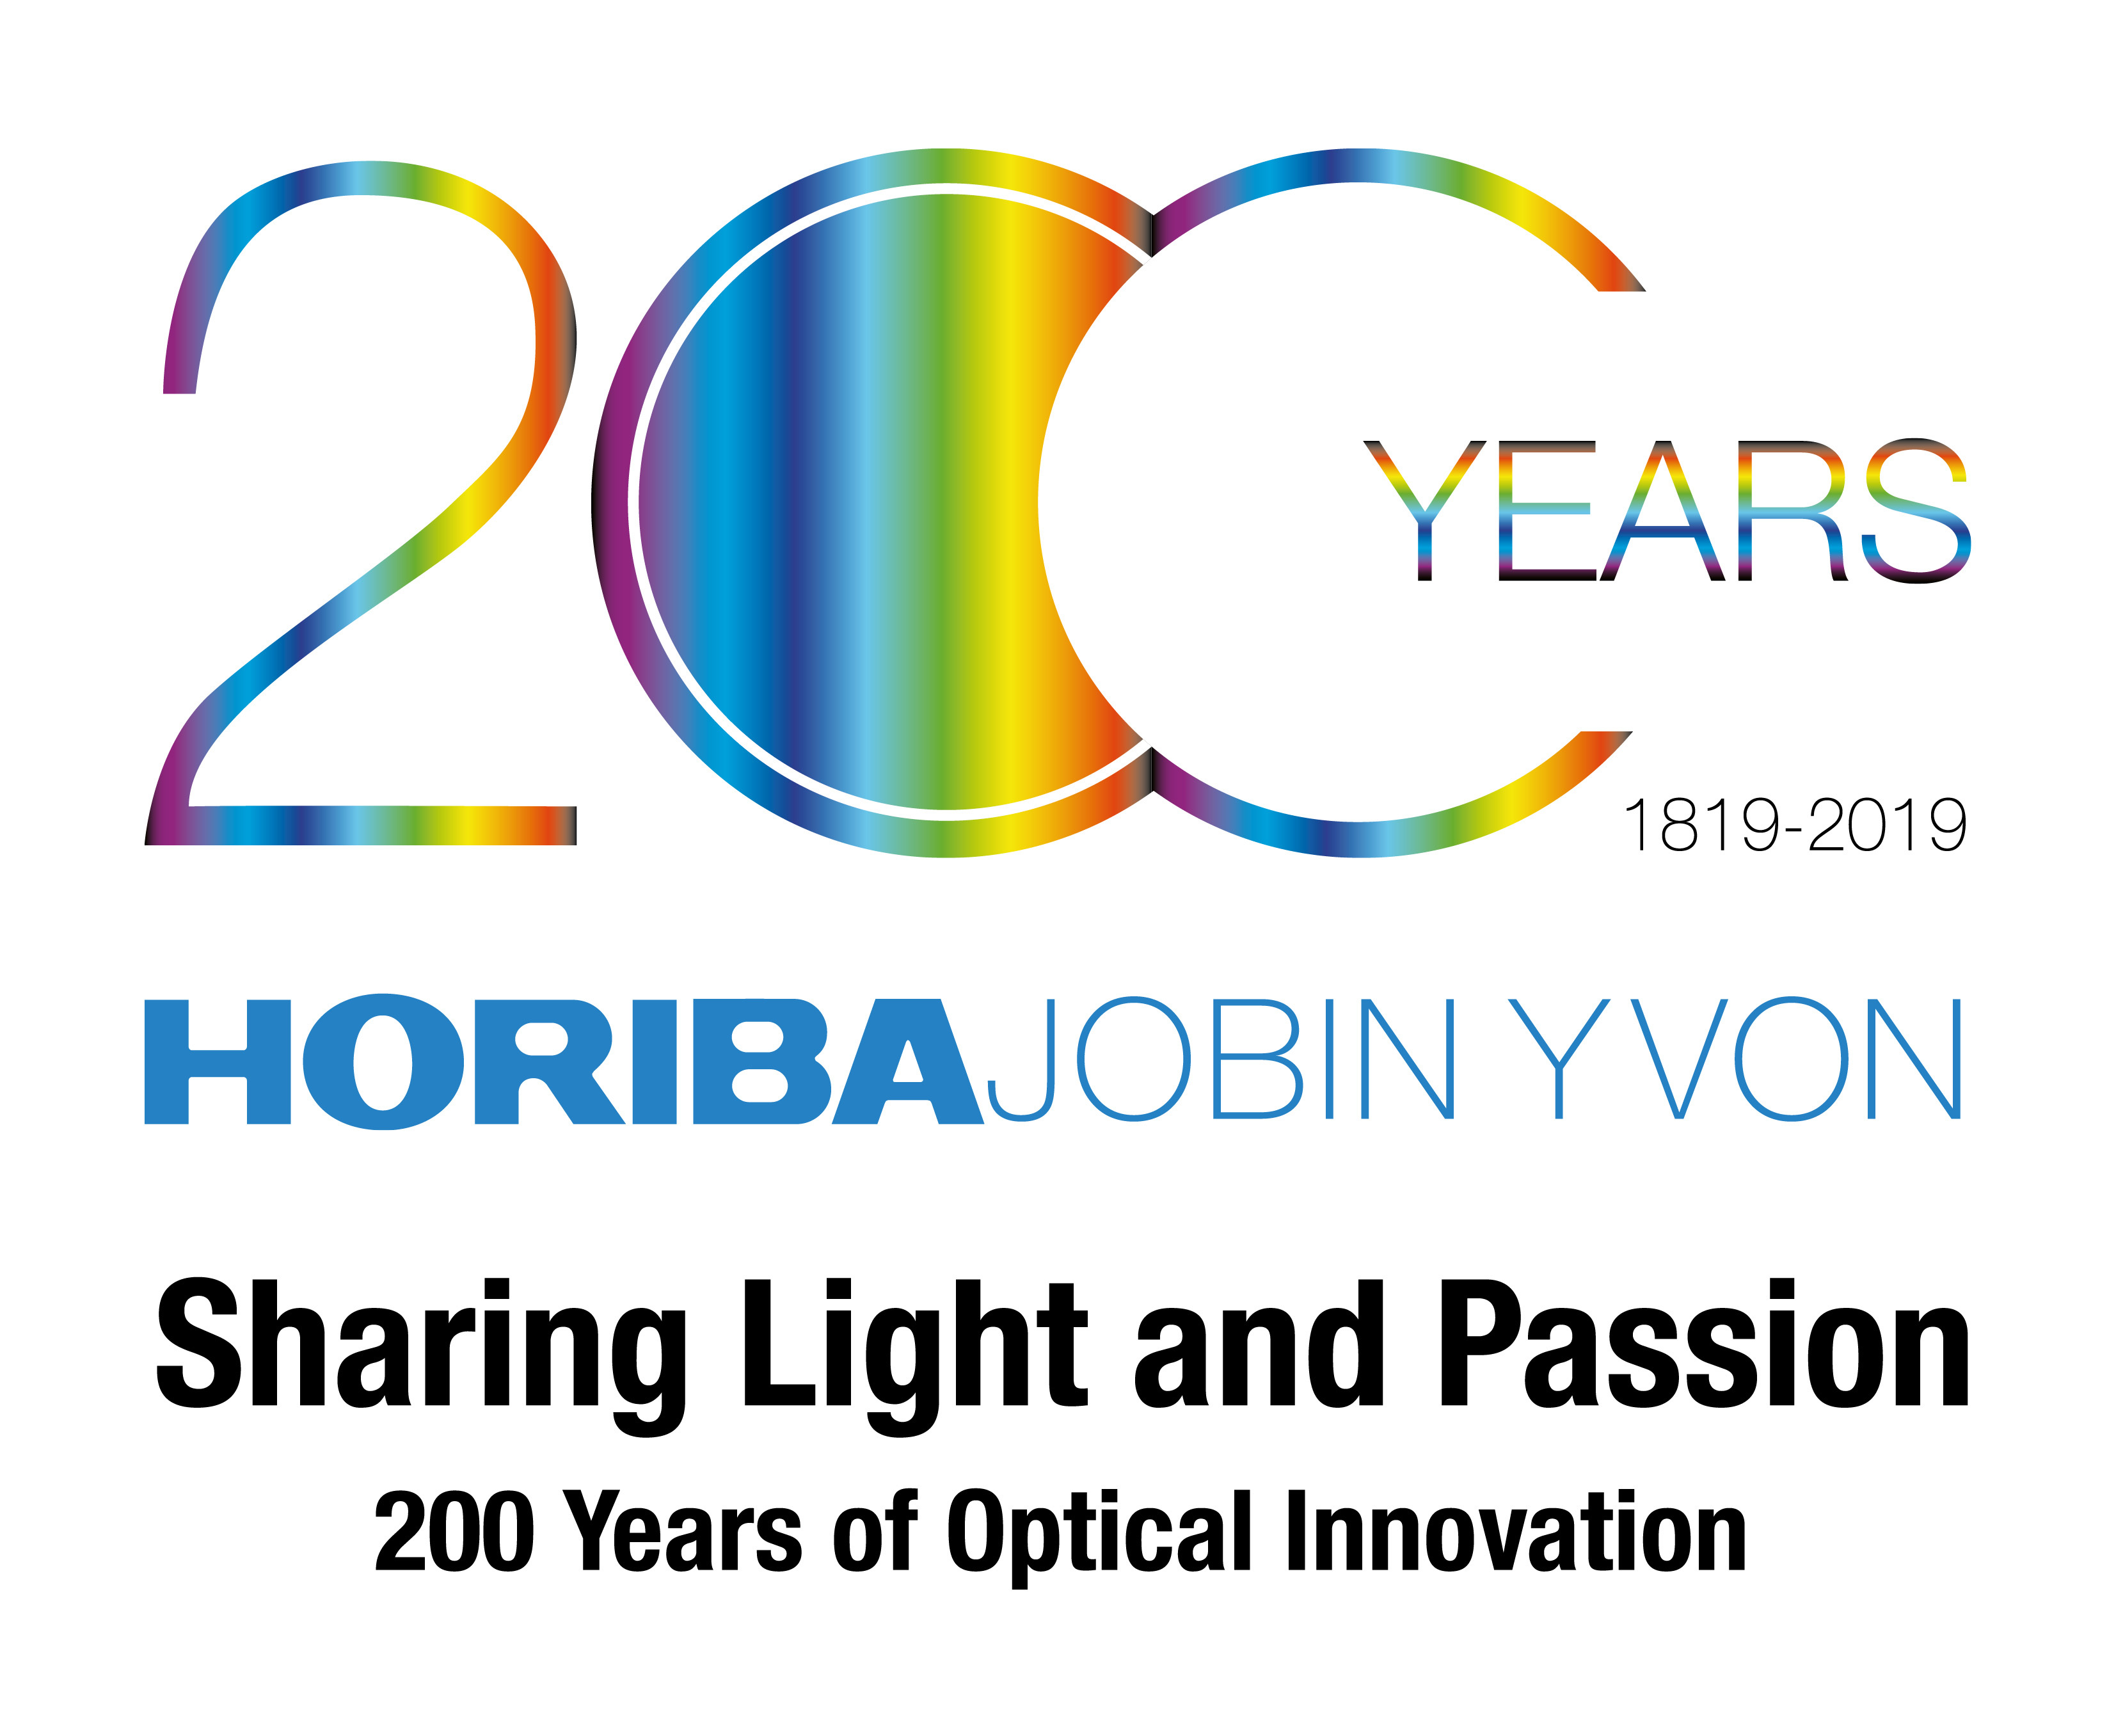 The 200th anniversary logo of the foundation of Jobin Yvon